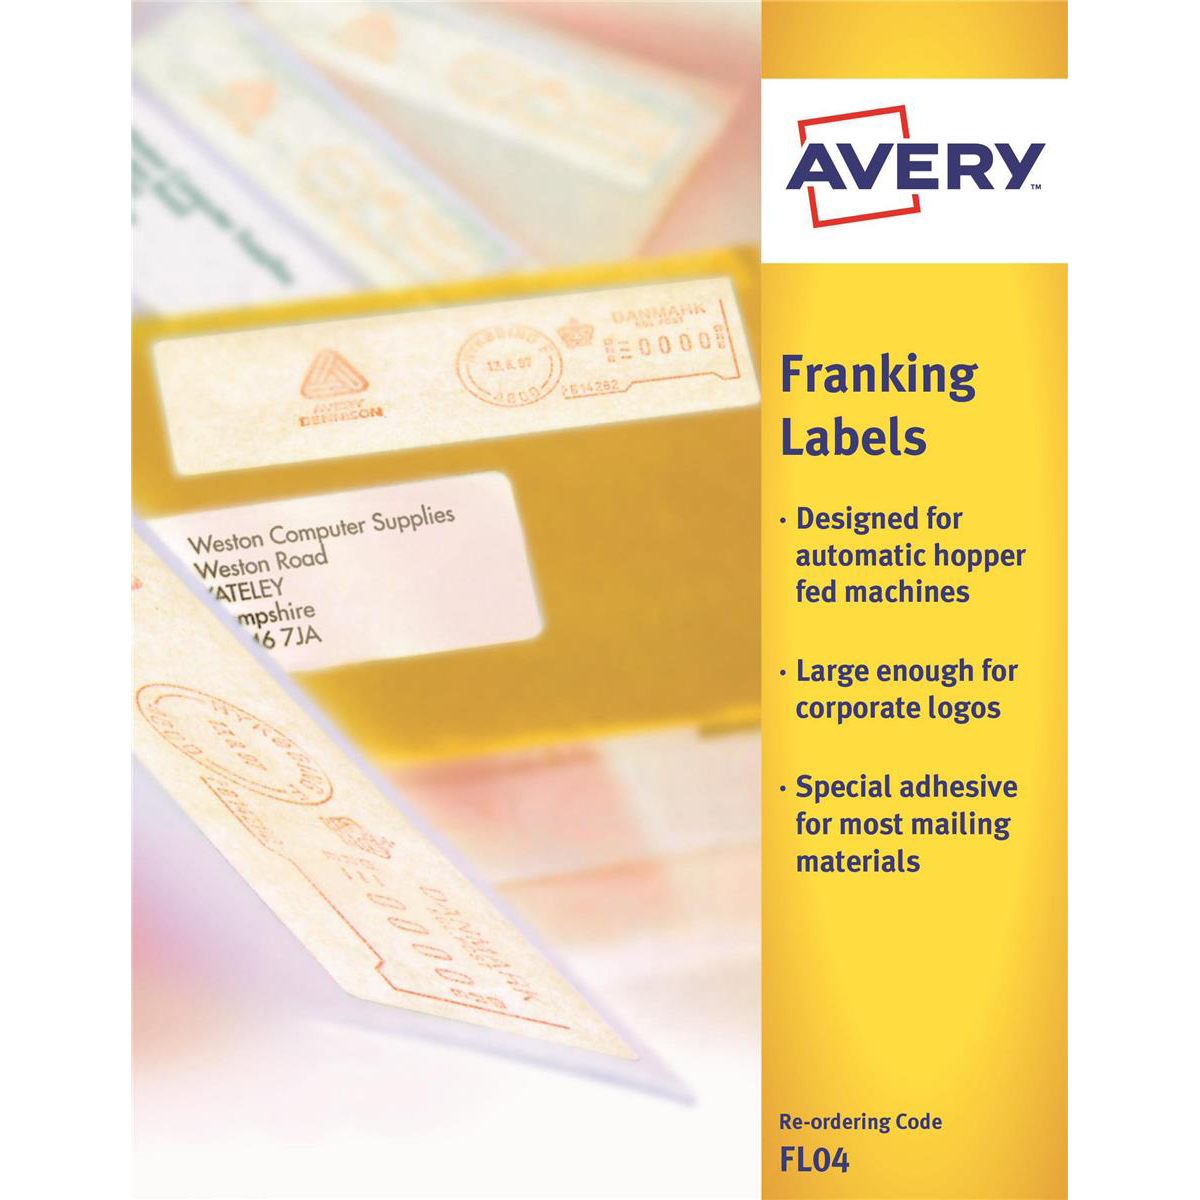 Franking Labels Avery Auto Franking Labels 1 per Sheet 140x38mm White Ref FL04 1000 Labels